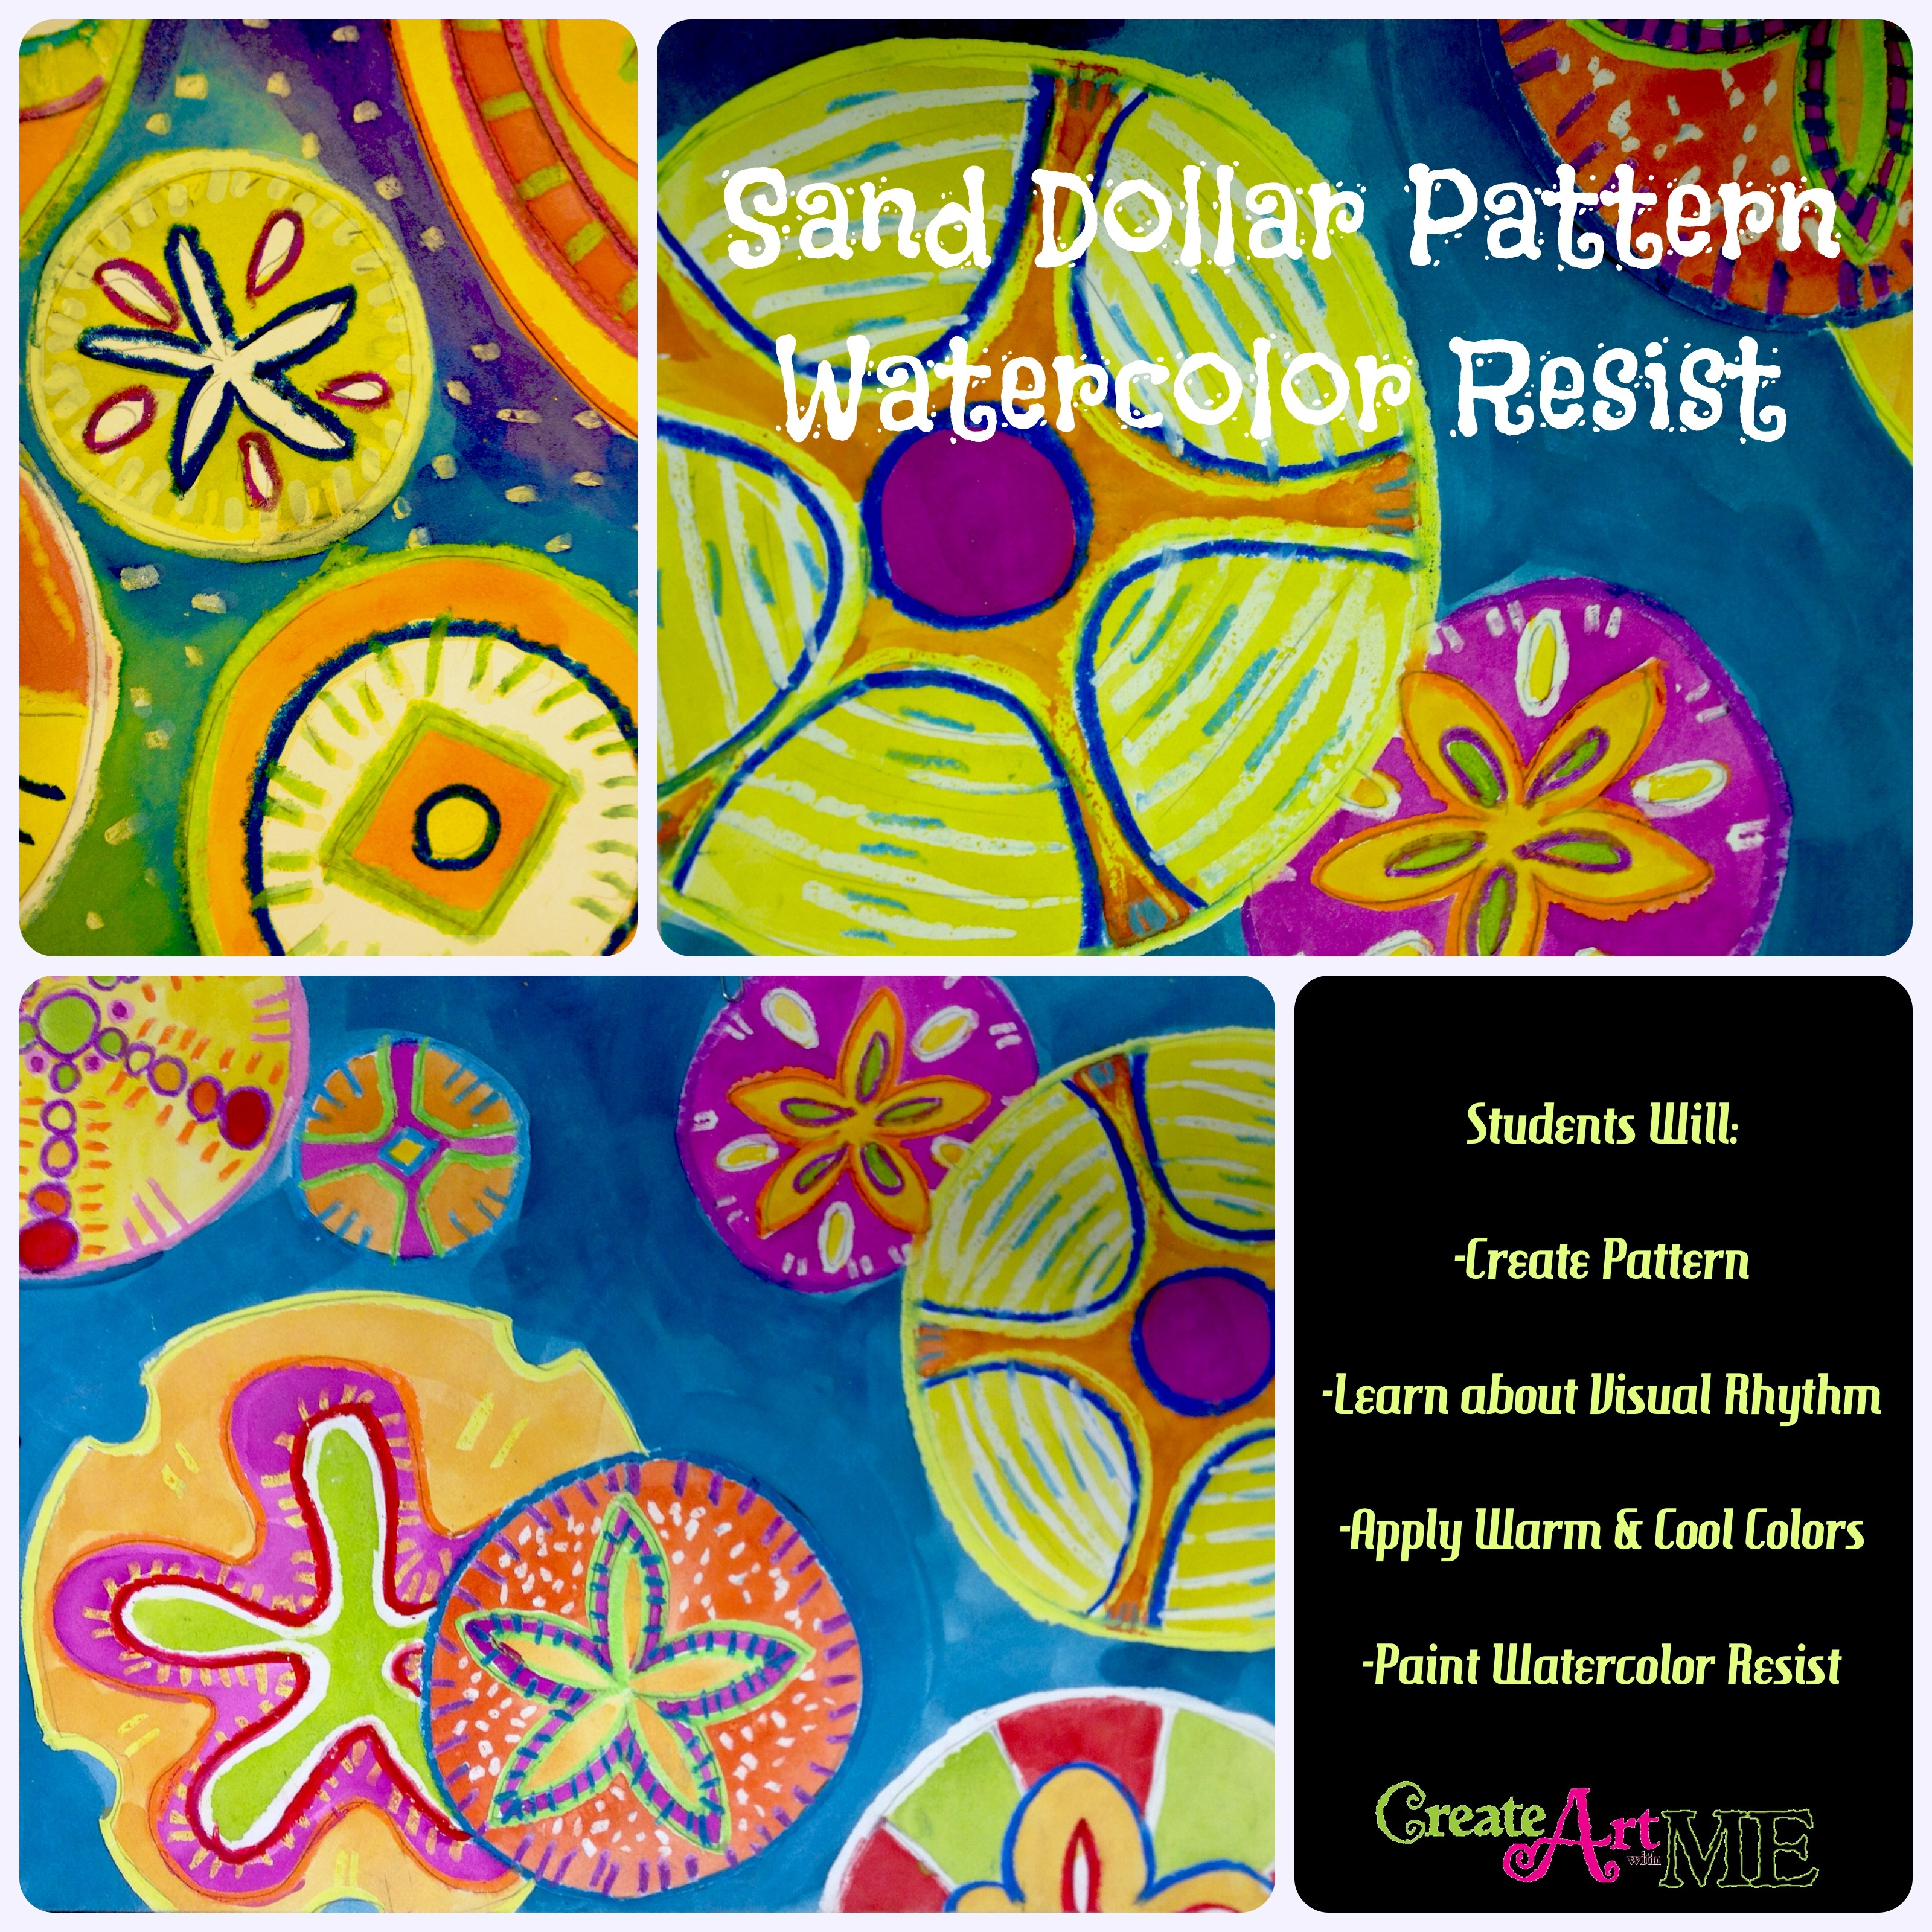 Sand Dollar Pattern Watercolor Resist Lesson